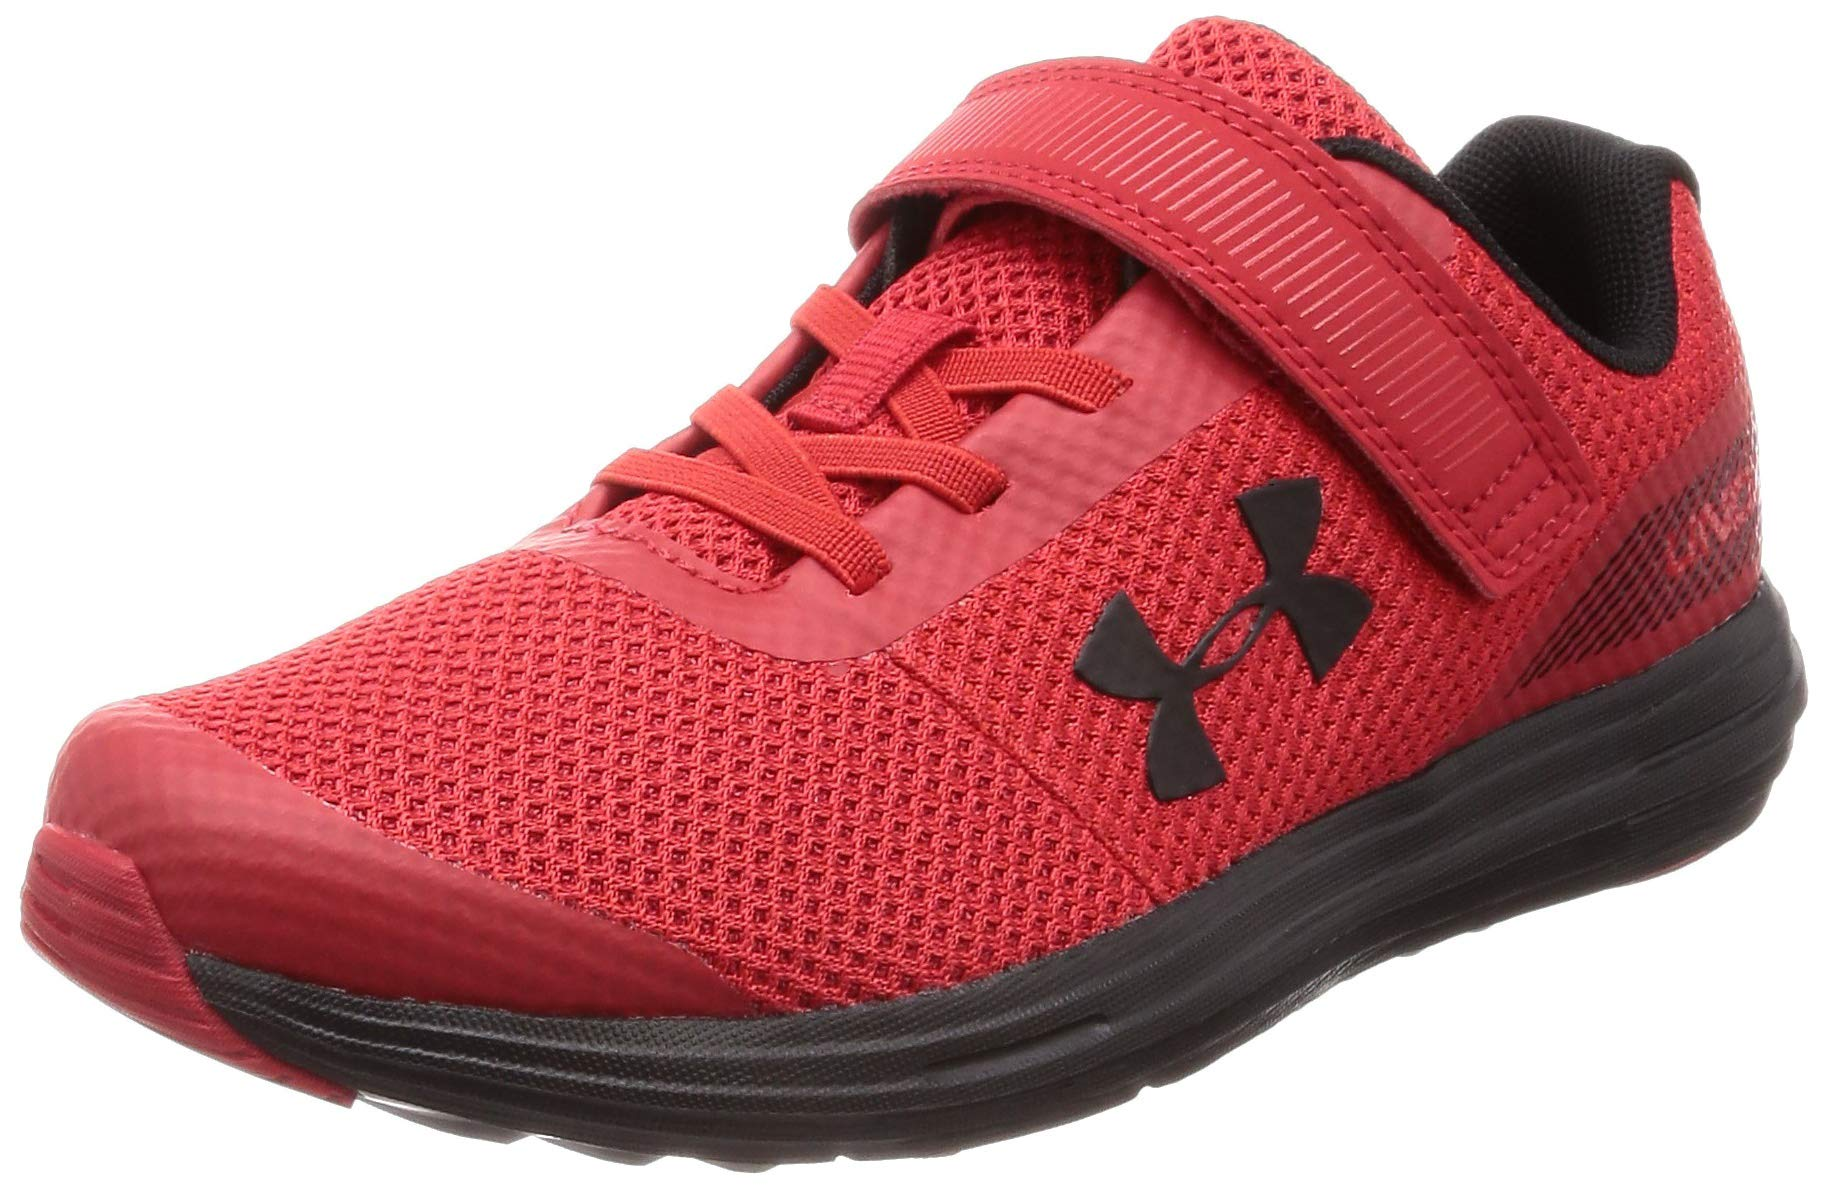 Under Armour Boys' Pre School Surge RN Alternate Closure Sneaker, Red (600)/Black, 2.5